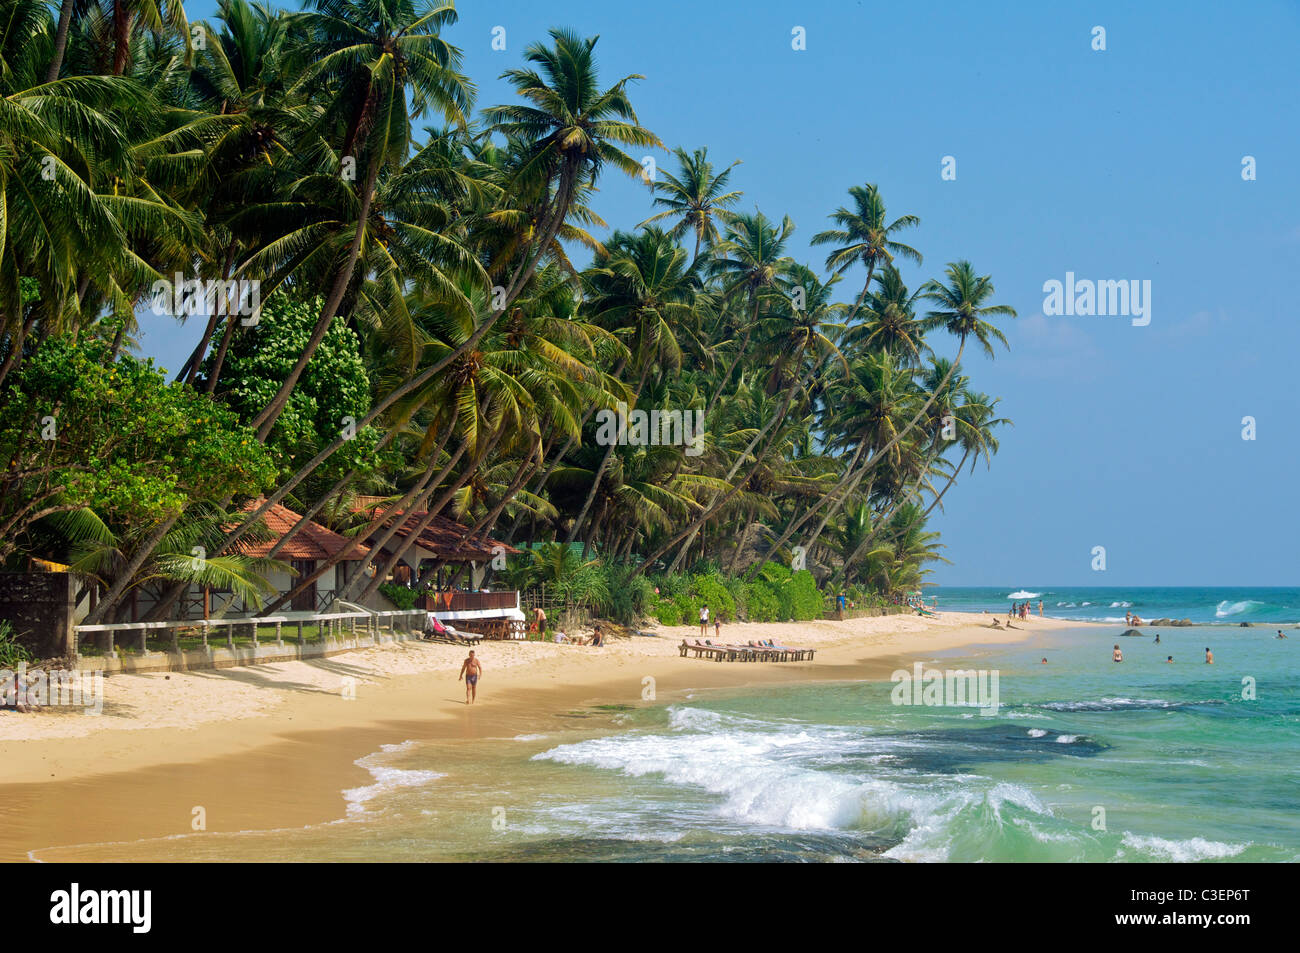 Uncrowded Beach With Crystal Clear Water Stock Photos & Uncrowded